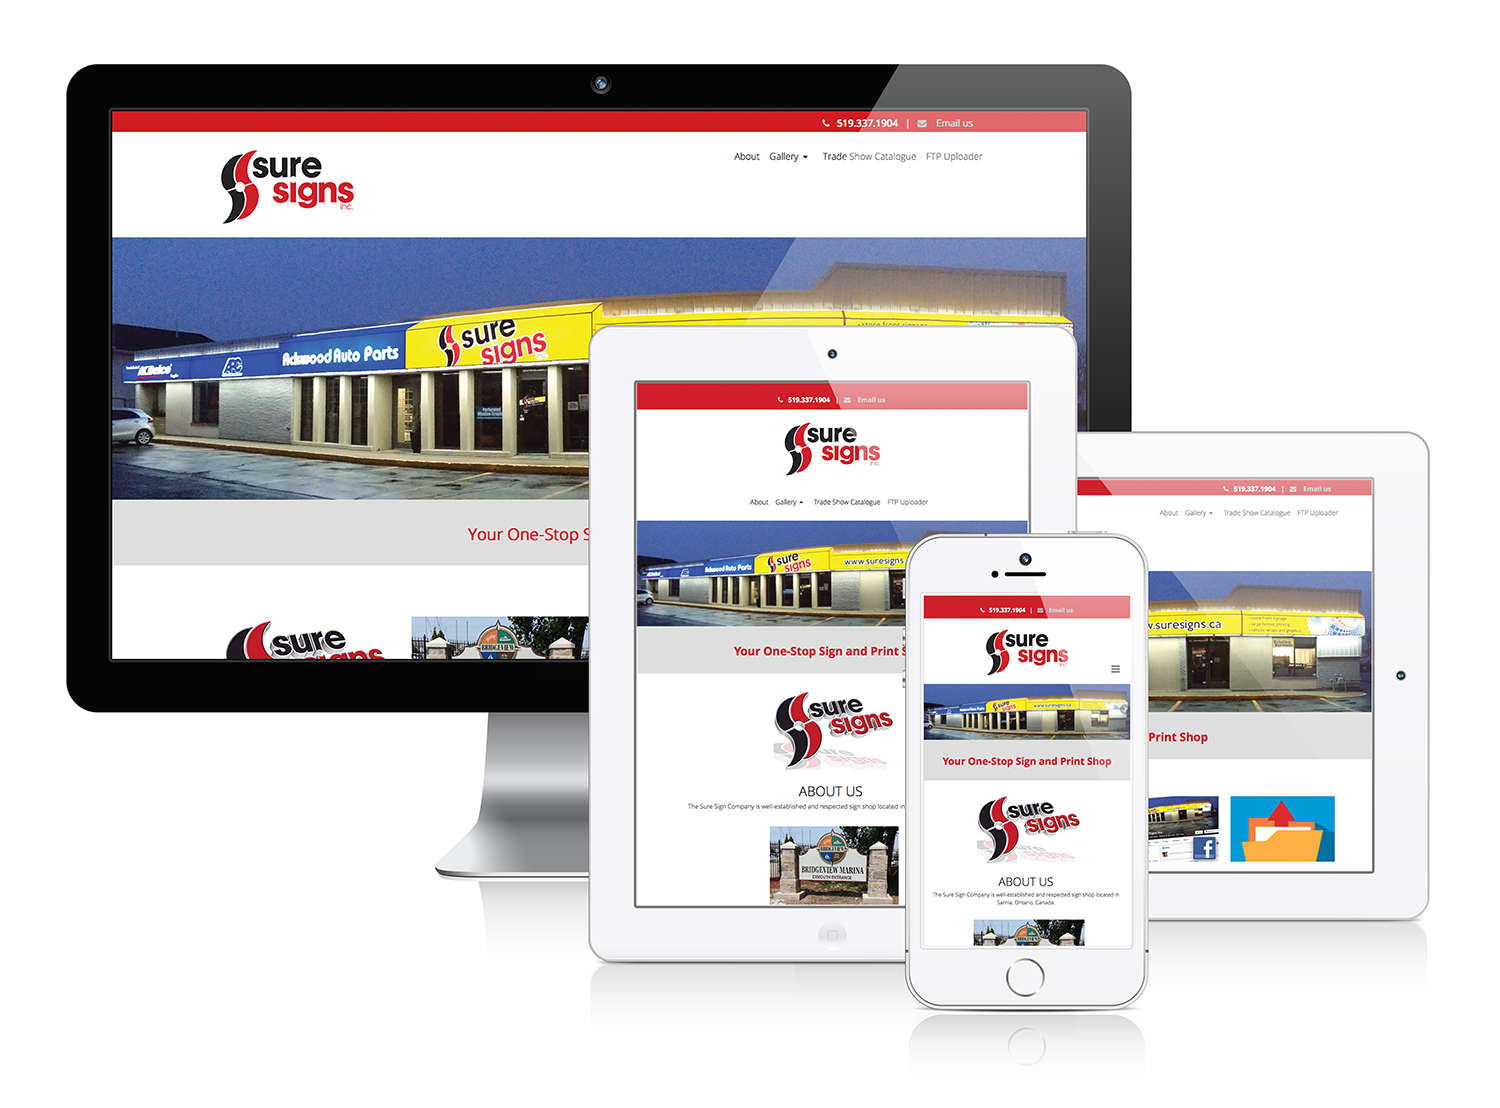 Sure Signs Inc - Responsive Web Design